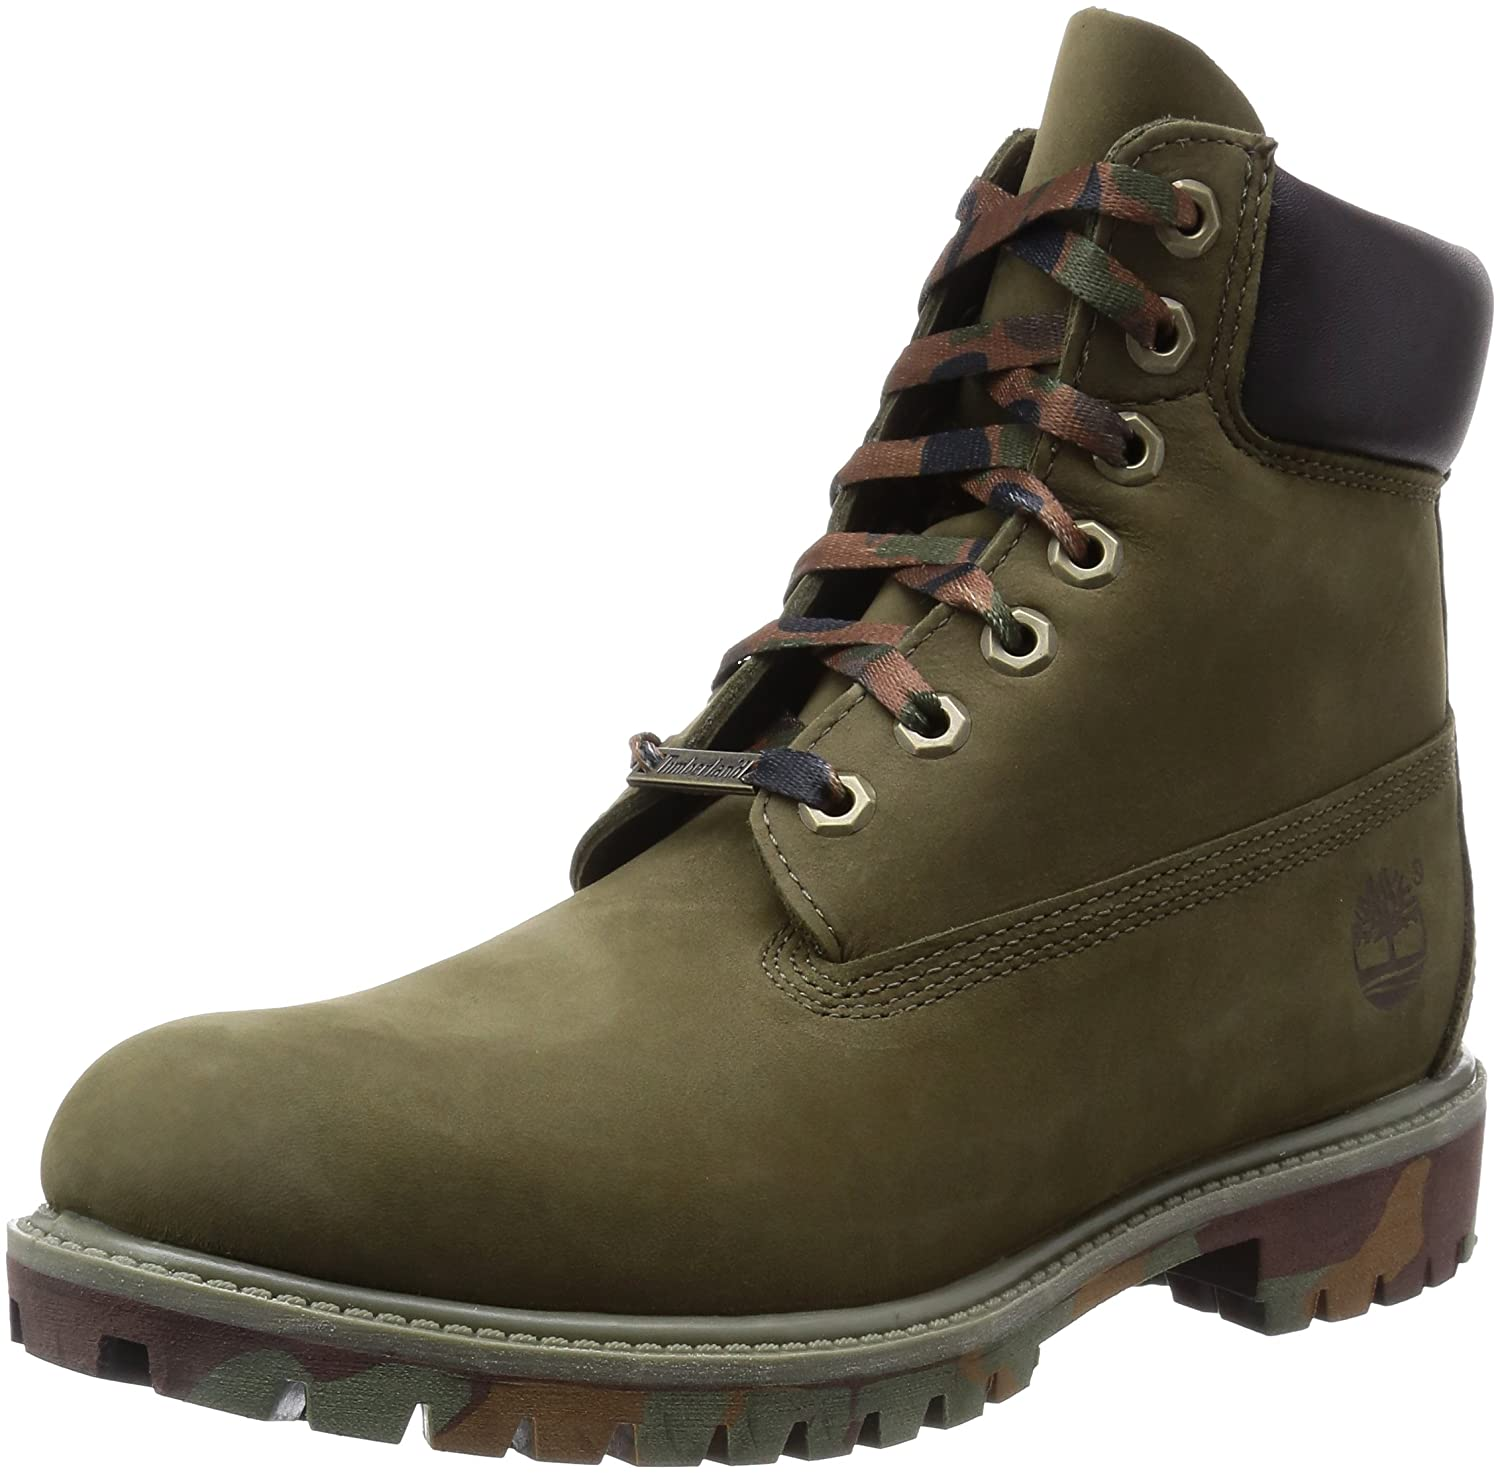 Timberland Men's Icon 6 Inch Premium Waterproof Boots, Durable and Comfortable Full Grain Premium Leather with Double Foamed Padded Collar